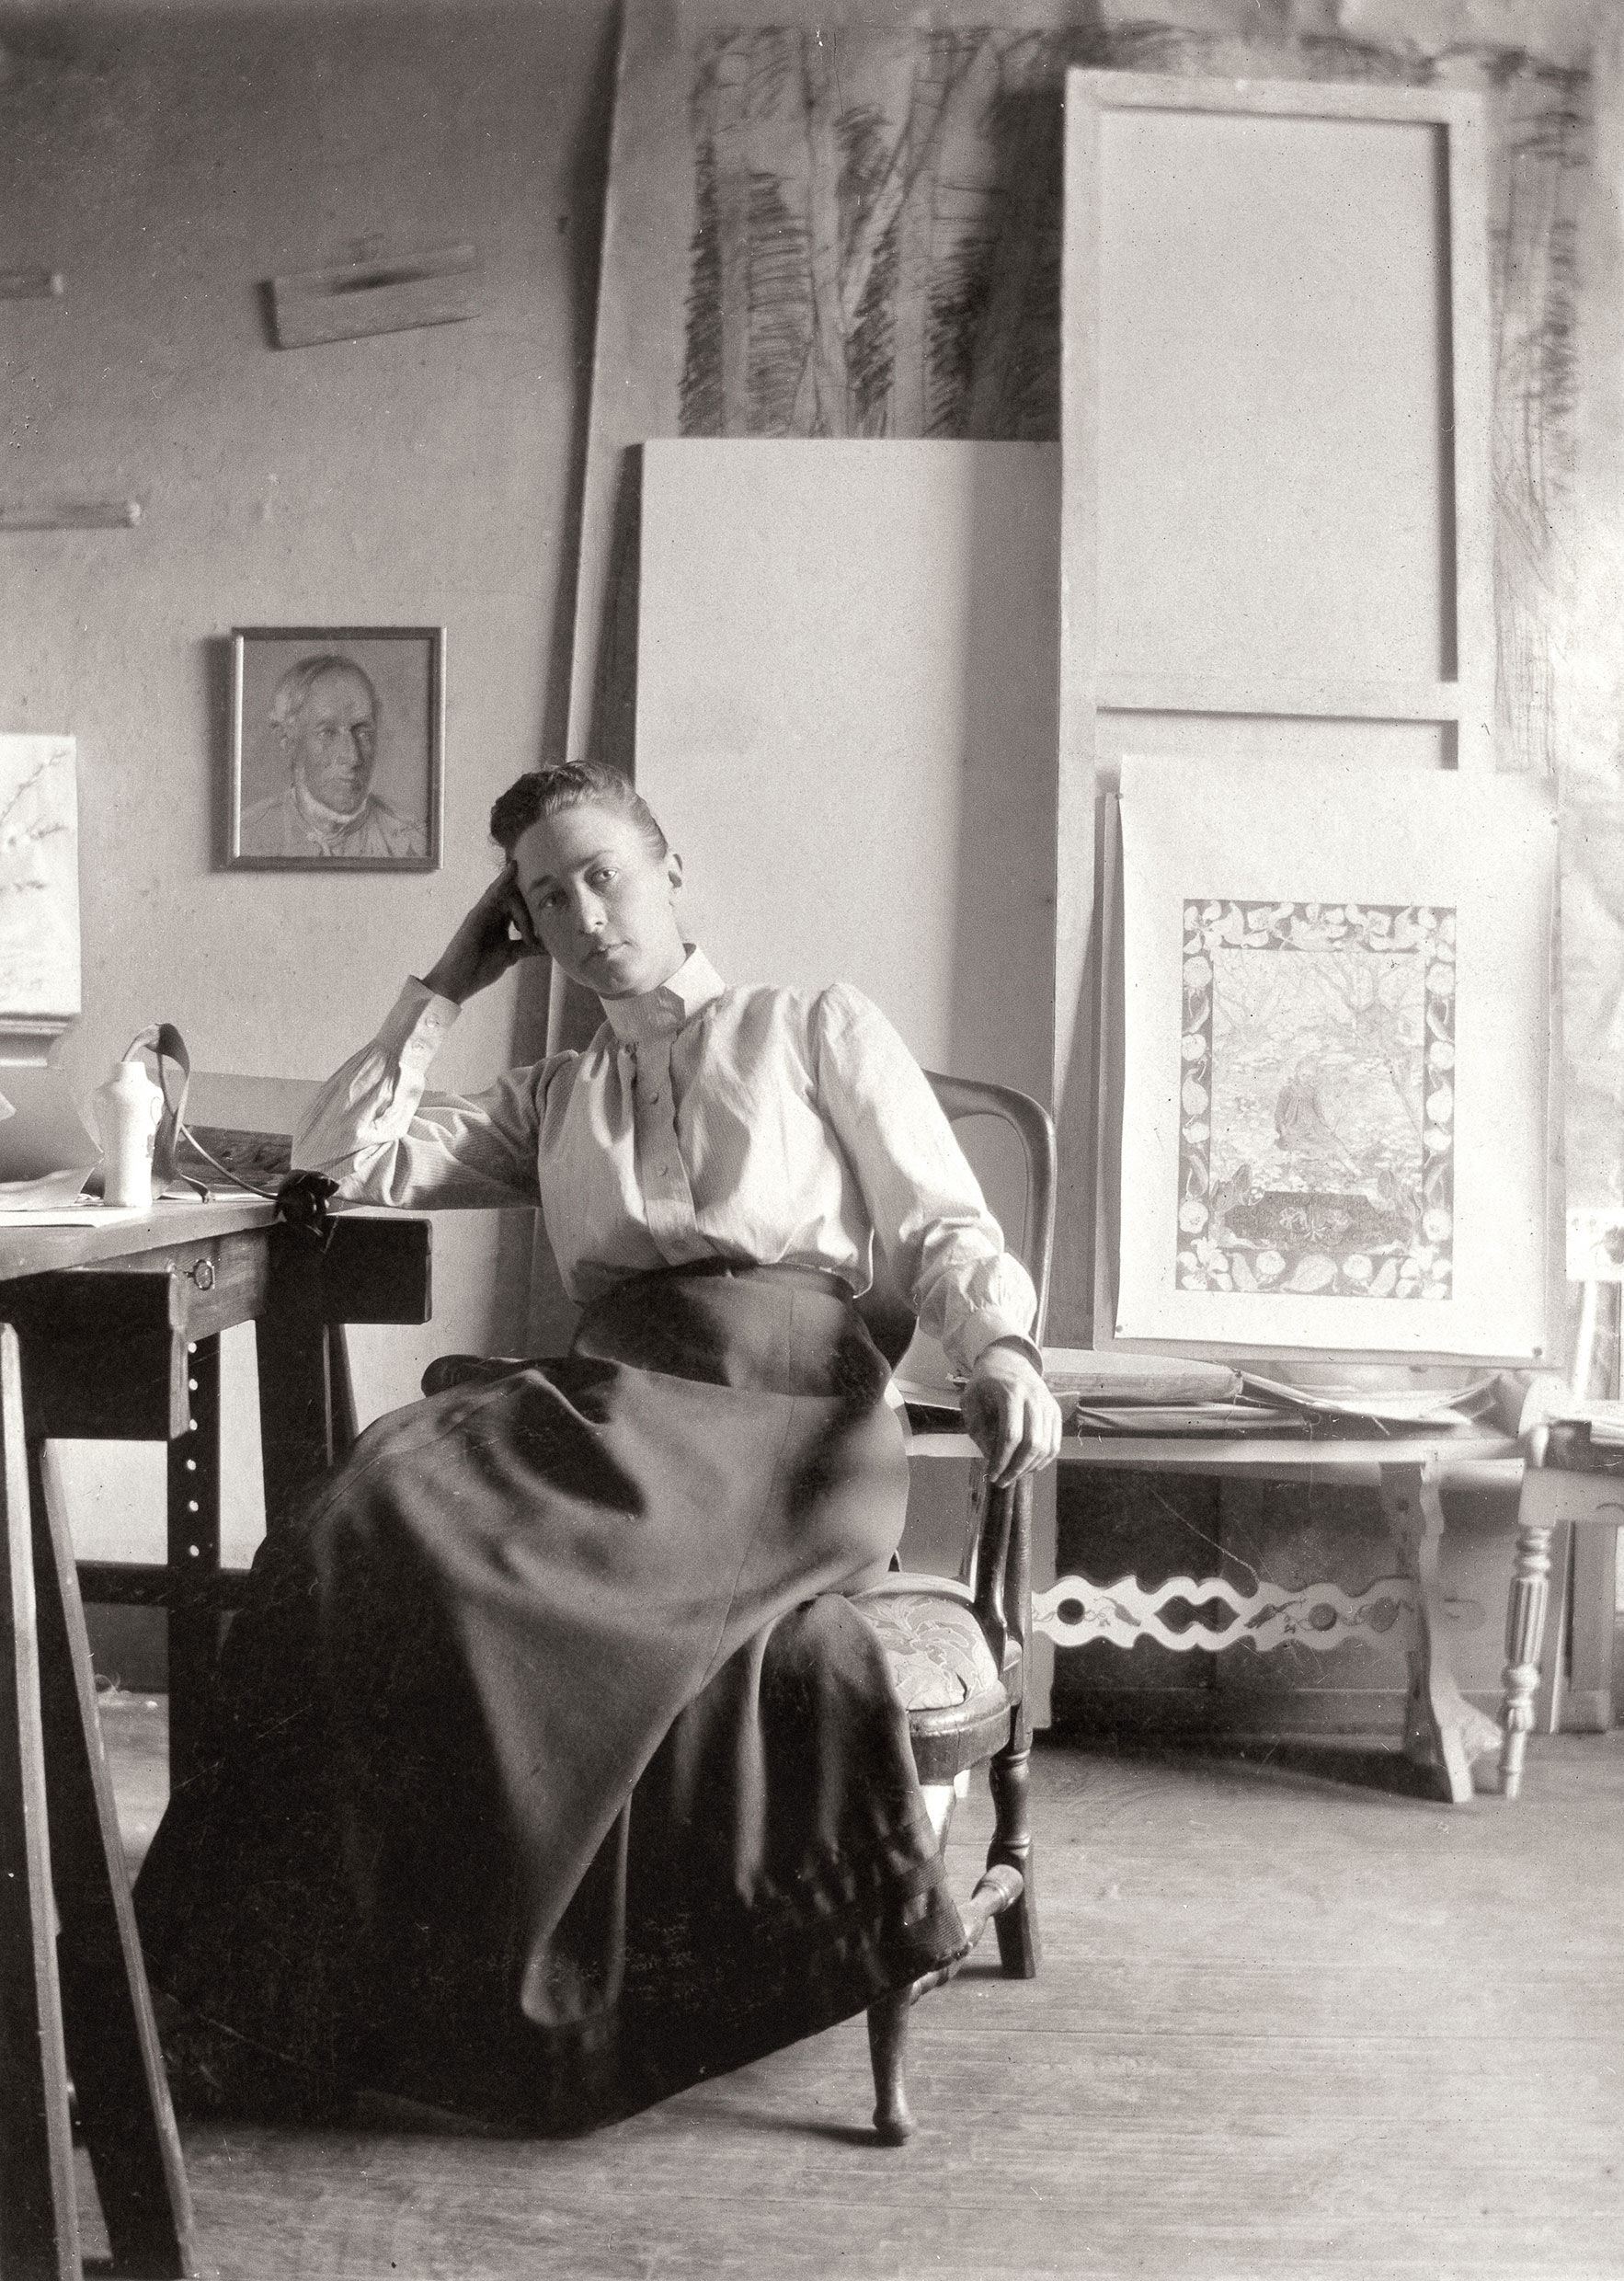 The artist Hilma af Klint sitting in her studio, wearing a long skirt and high-collared blouse.